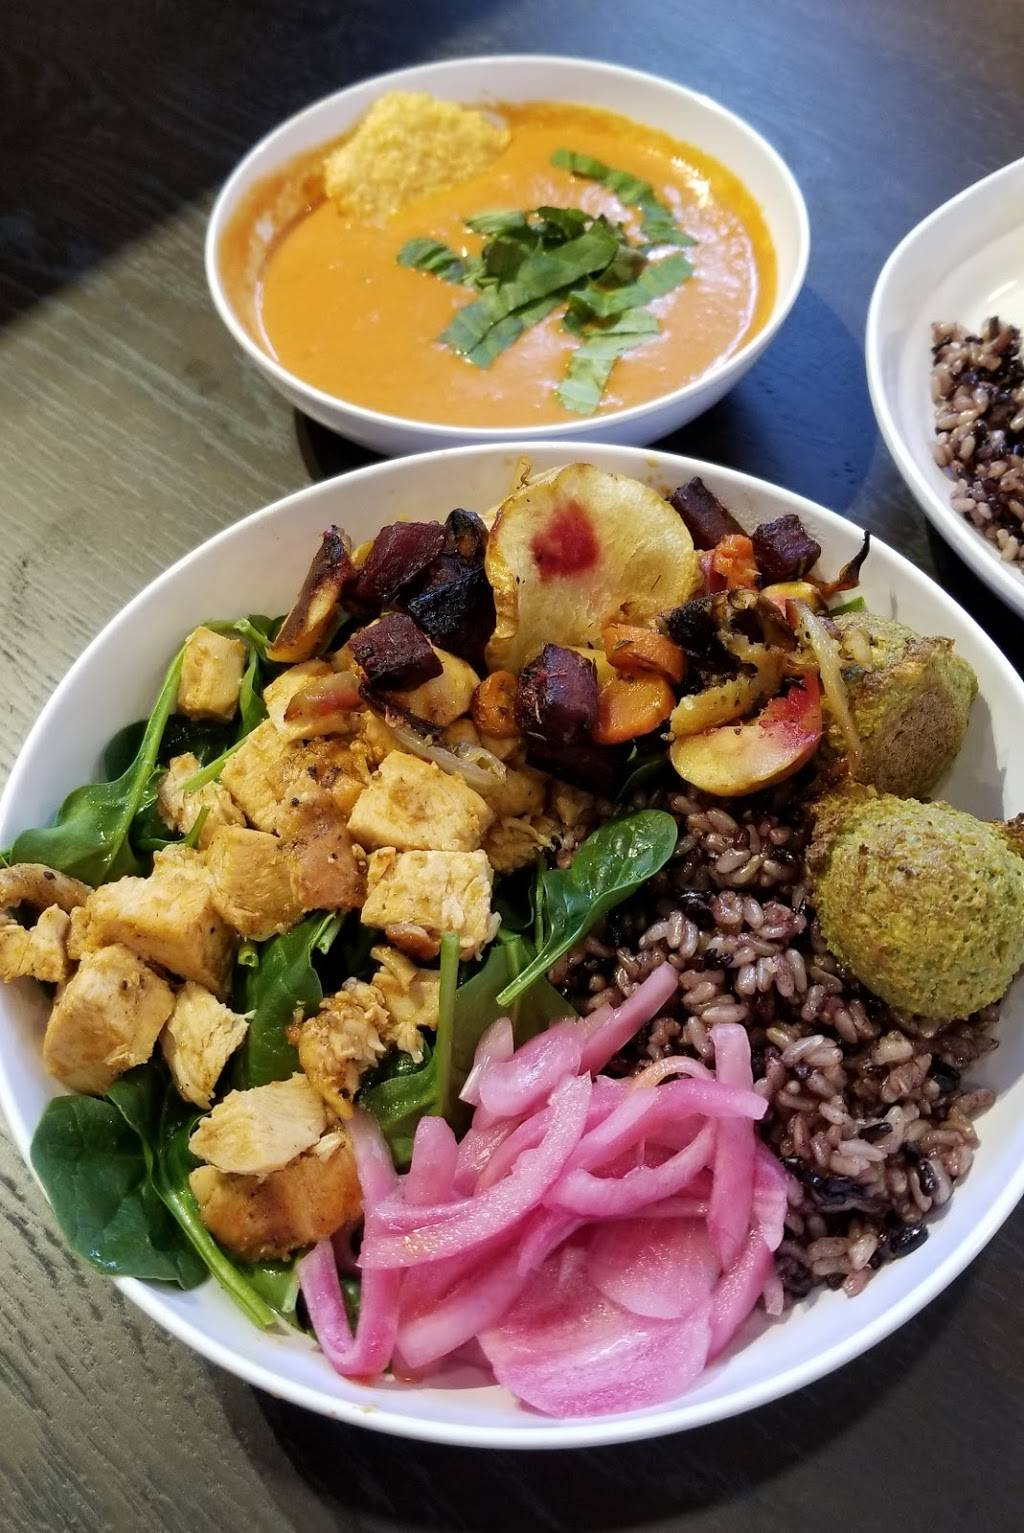 CoreLife Eatery | restaurant | 2512 N Prospect Ave, Champaign, IL 61822, USA | 2176936993 OR +1 217-693-6993